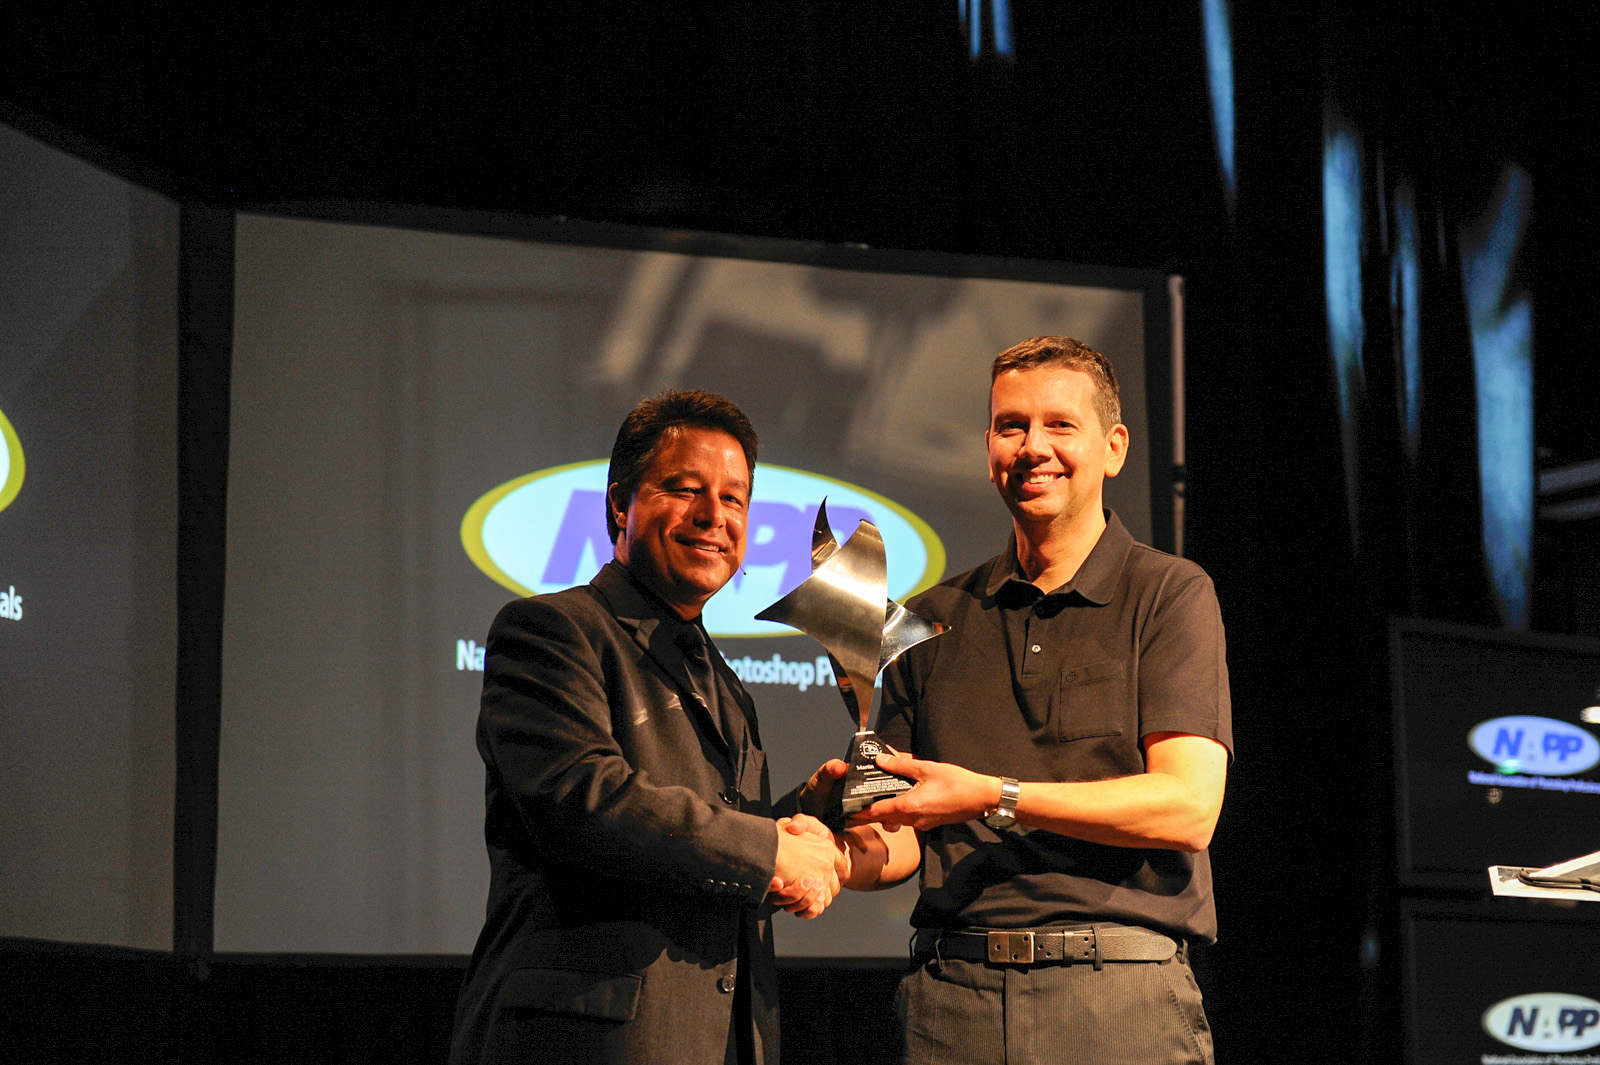 Martin (R)accepting his Photoshop Hall of Fame from NAPP's Larry Becker (L) on stage during the opening keynote presentation at the Photoshop World Conference & Expo.